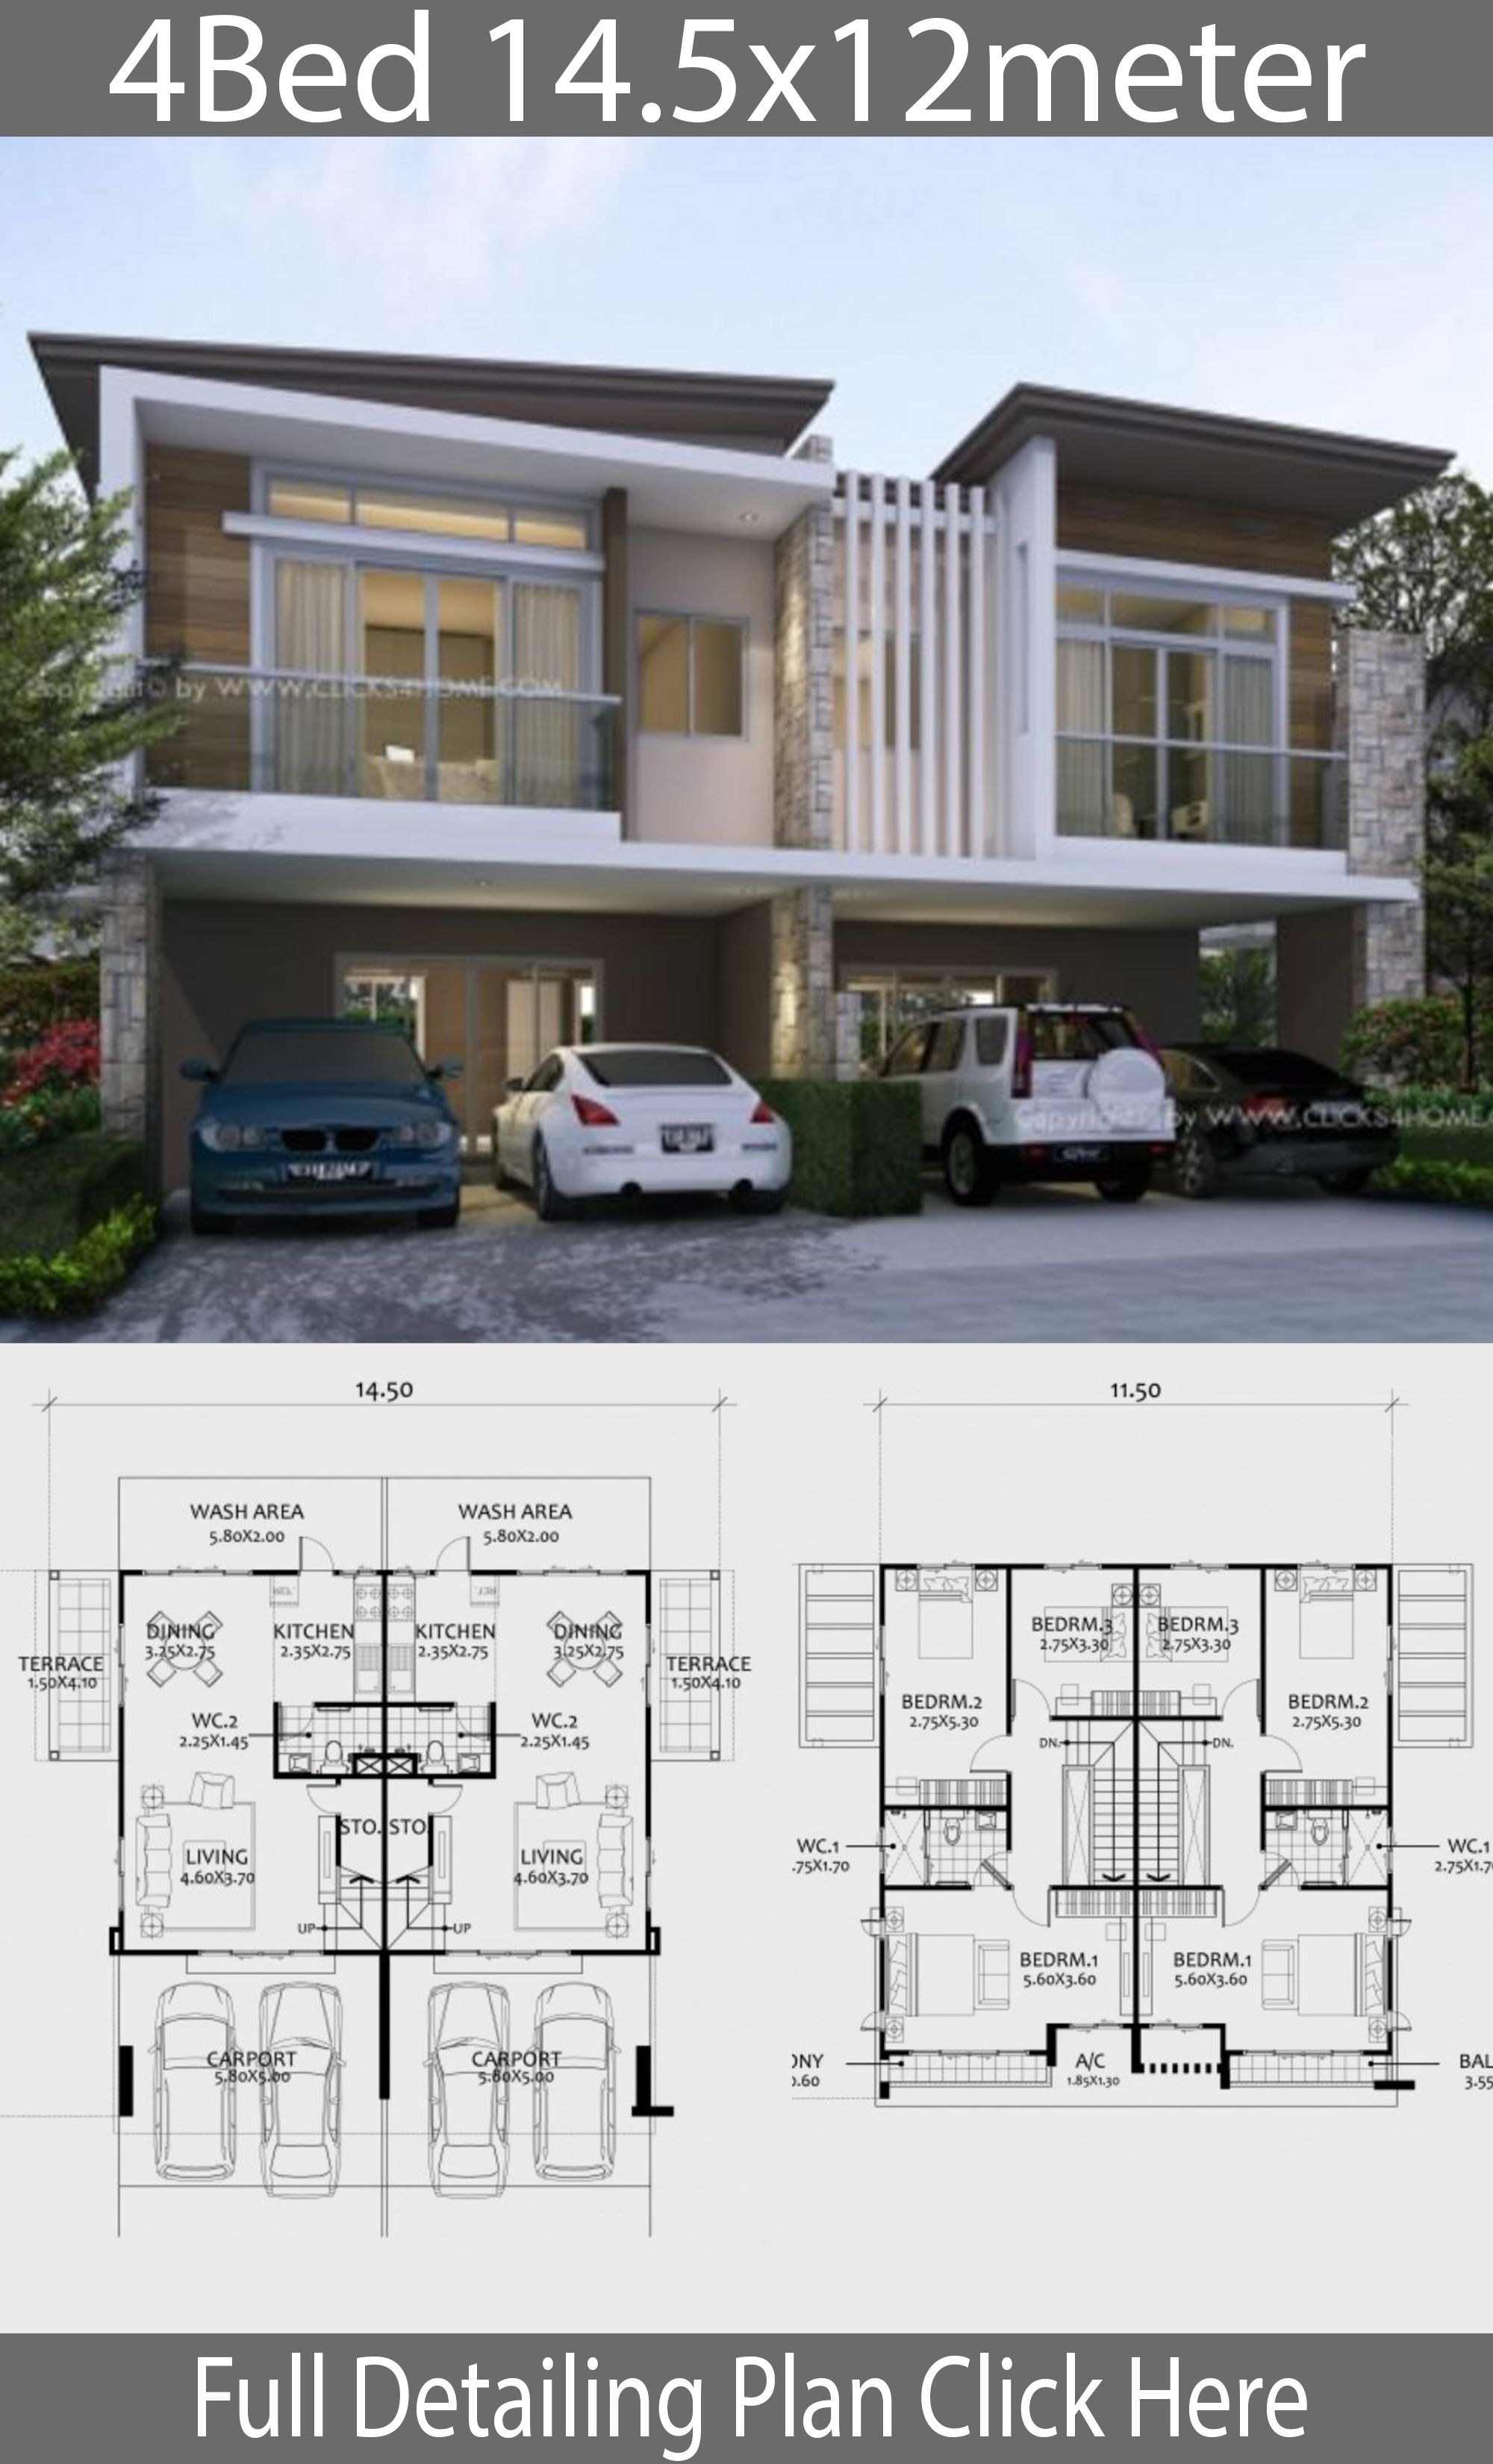 Twin House Design Plan 14 5x12m With 6 Bedrooms House Idea House Layout Plans Model House Plan House Architecture Design